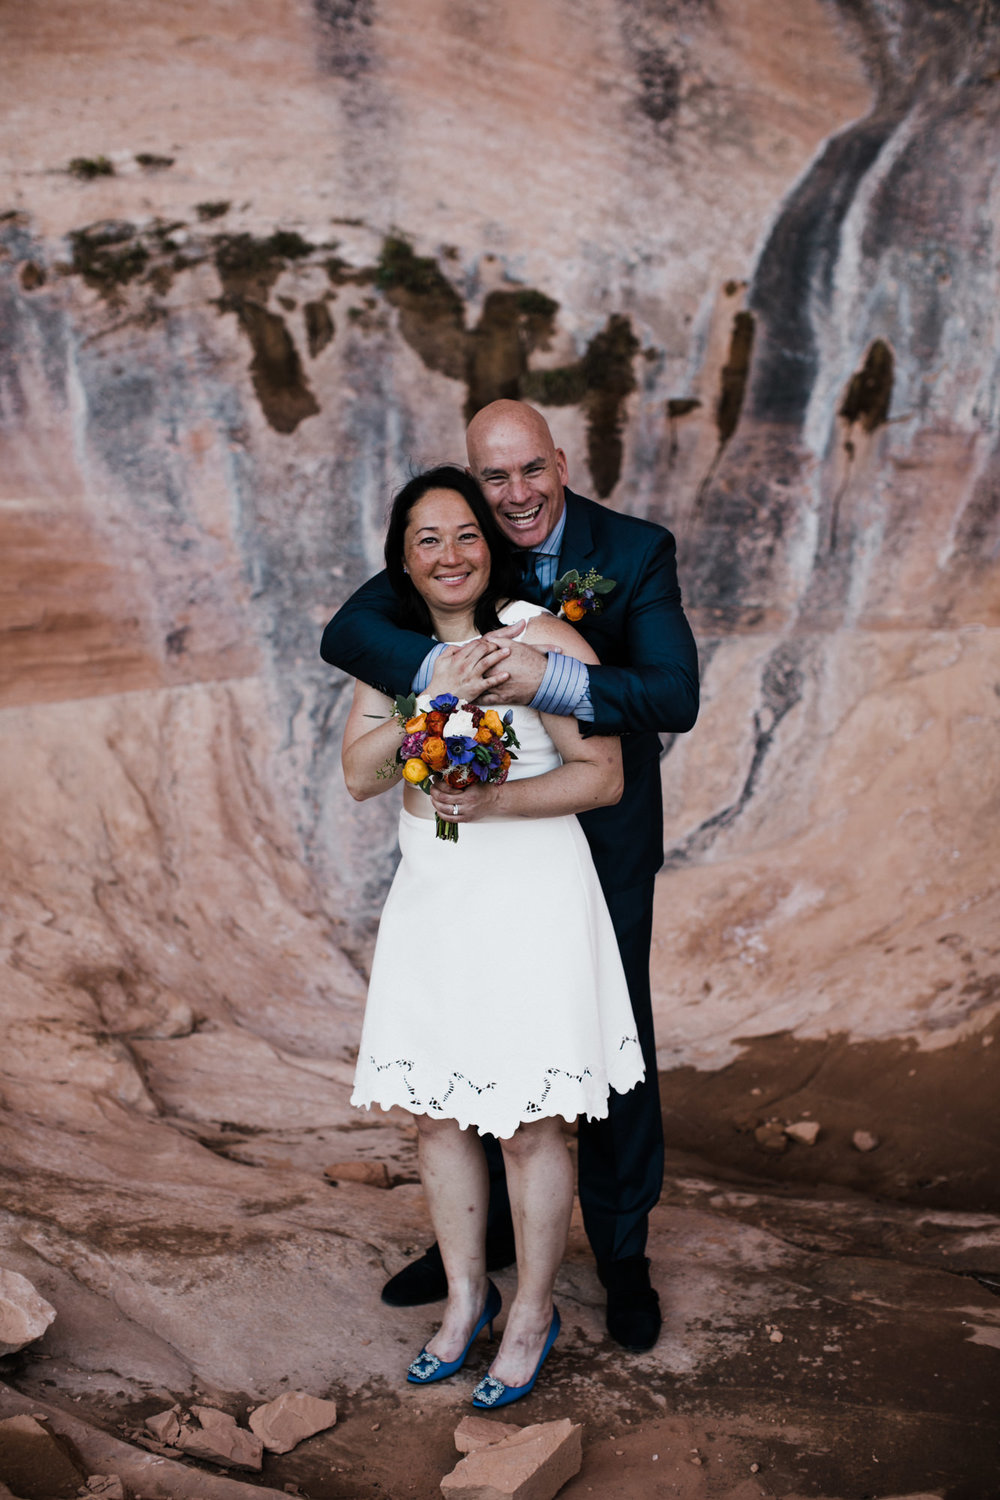 bob + janice's adventurous hike-in elopement | desert arch wedding inspiration | moab, utah intimate wedding photographer | the hearnes adventure photography | www.thehearnes.com